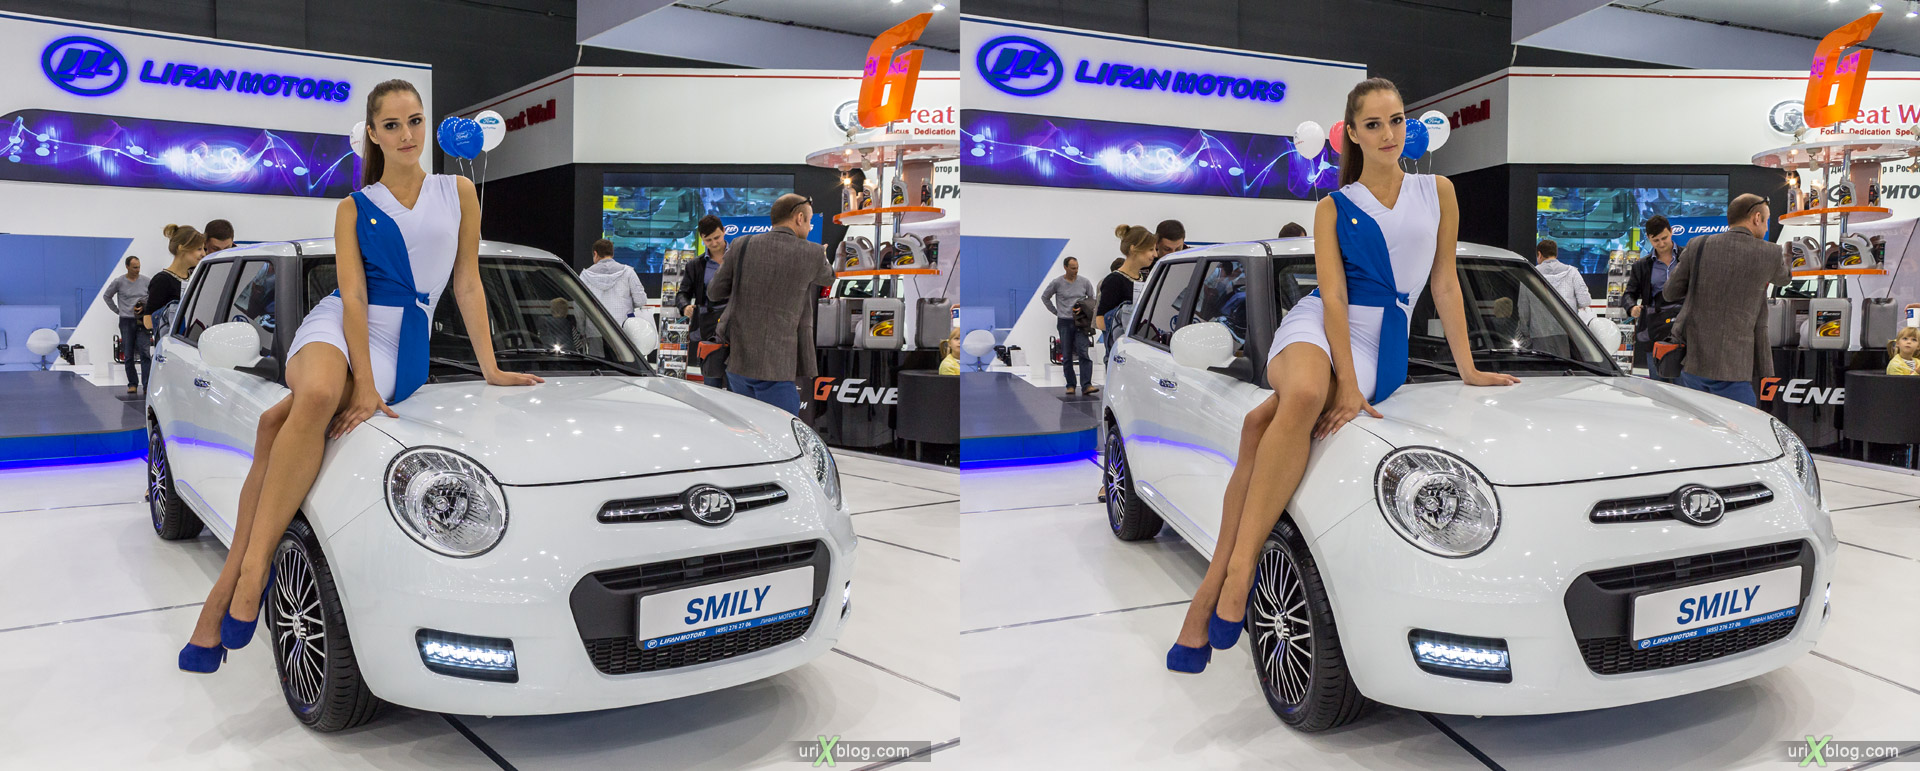 2014, Lifan motors Smily, Moscow International Automobile Salon, MIAS, Crocus Expo, Moscow, Russia, augest, 3D, stereo pair, cross-eyed, crossview, cross view stereo pair, stereoscopic